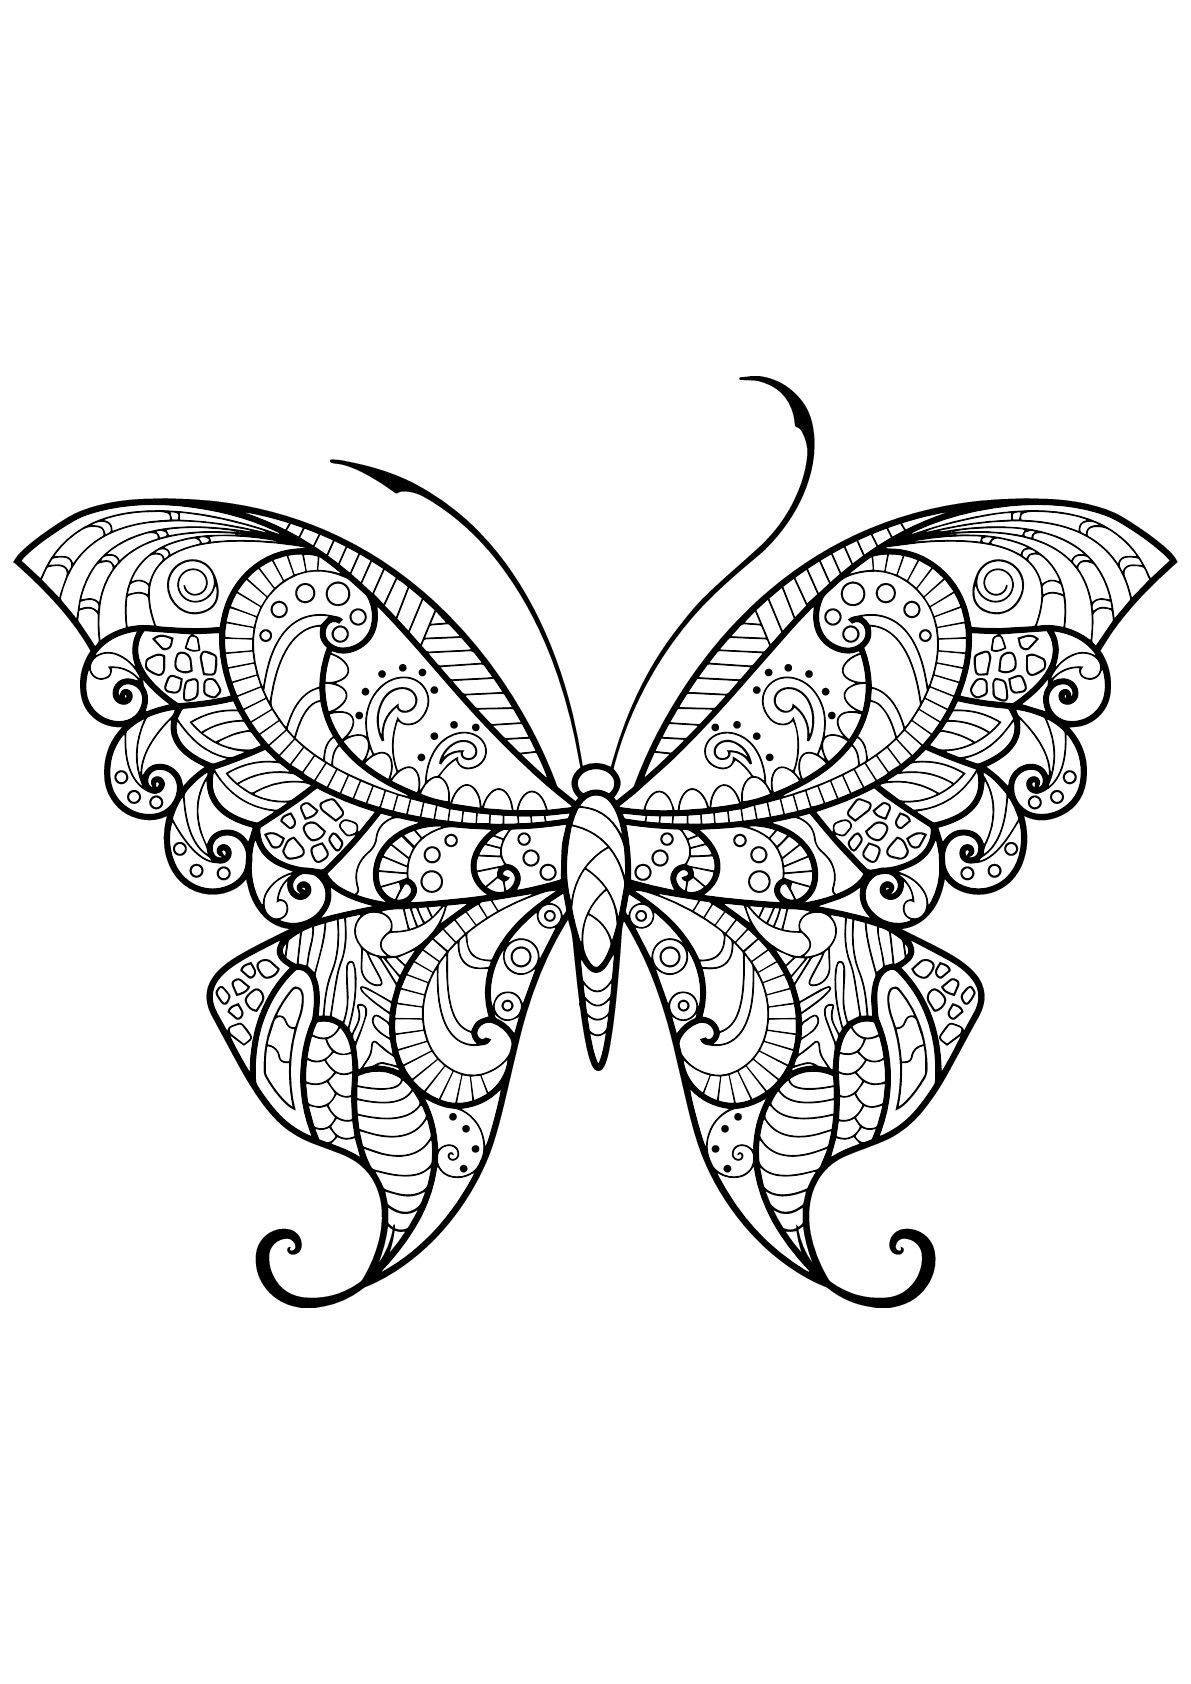 Butterfly Beautiful Patterns 12 Butterfly With Beautiful Patterns 12 From The Gallery Butterfly Coloring Page Insect Coloring Pages Mandala Coloring Pages [ 1684 x 1191 Pixel ]